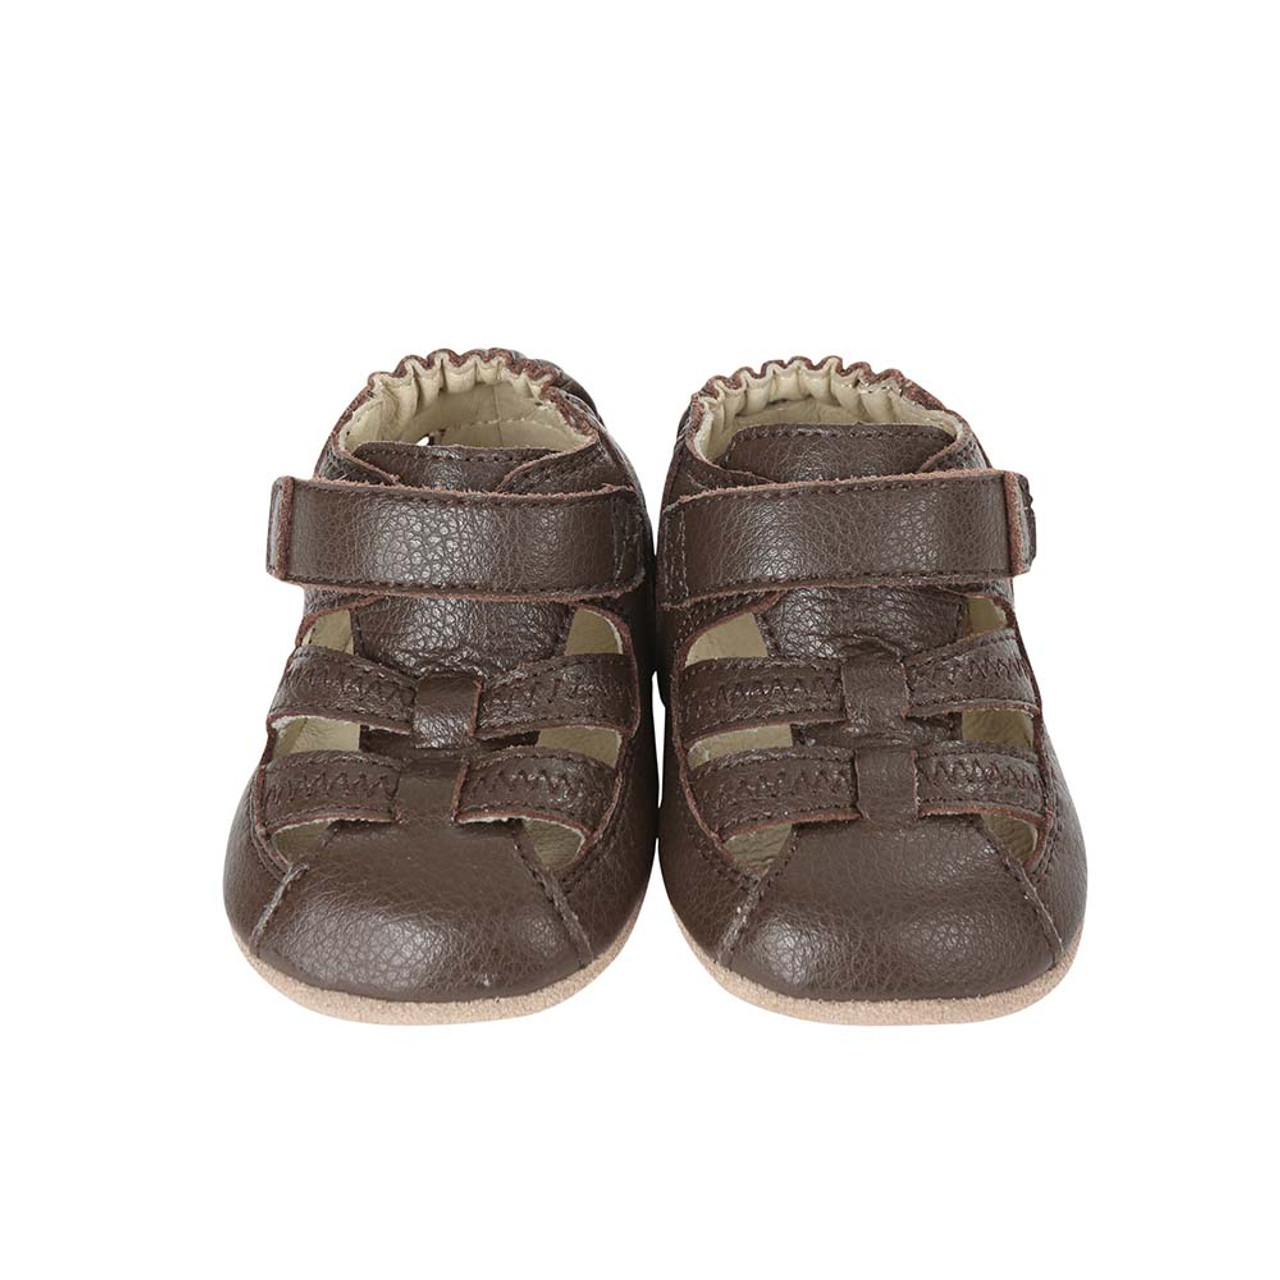 50c2384c4 Front view of Brown Baby Sandal